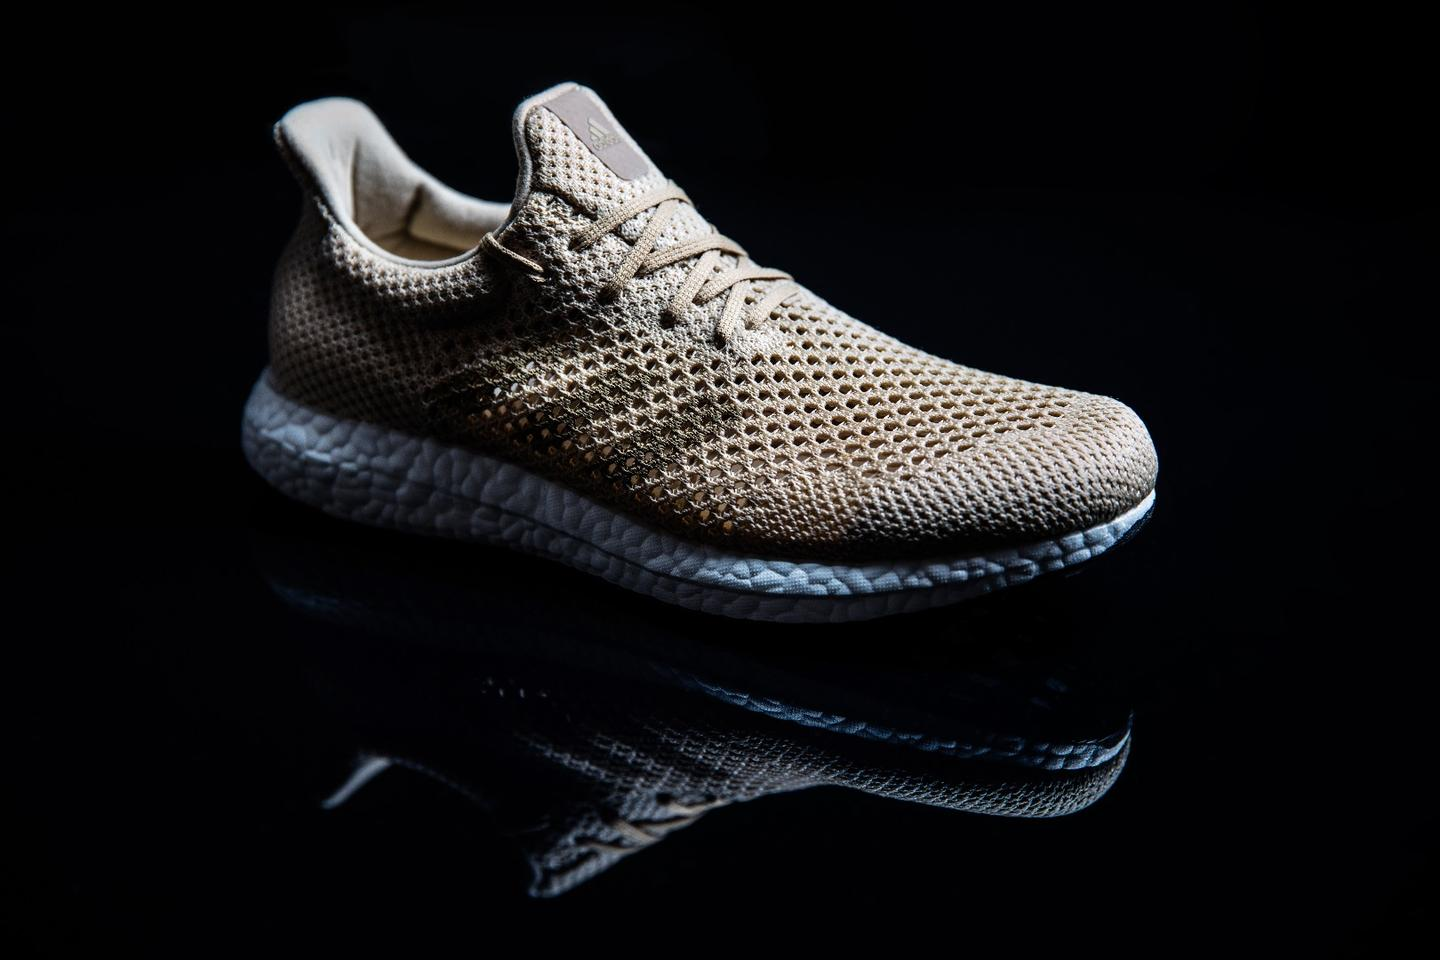 The Adidas Futurecraft Biofabric promises better performance than conventional materials